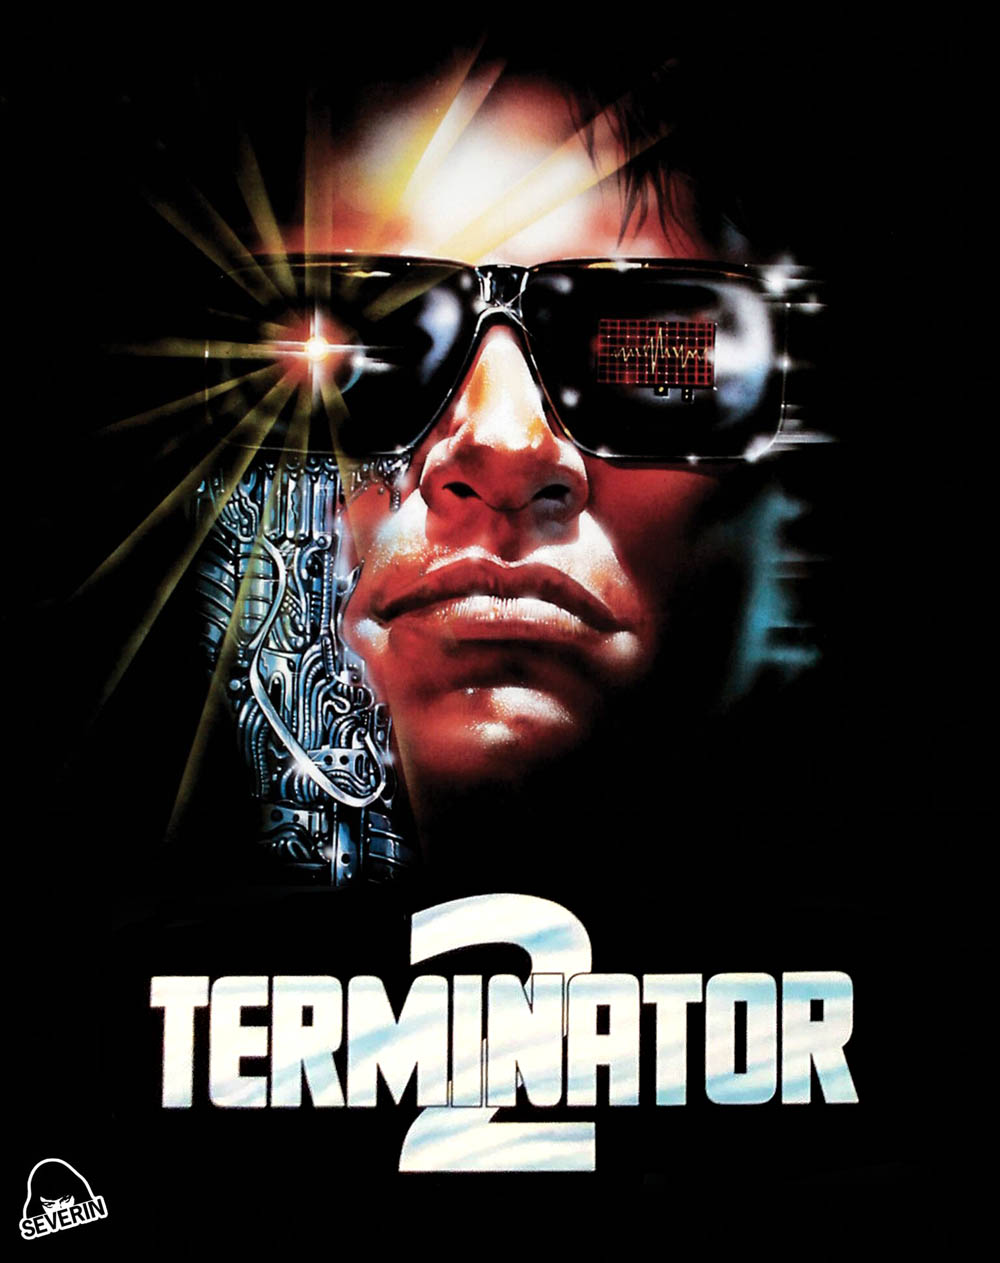 terminator 2 essay Nearly 10 years have passed since sarah connor was targeted for termination by a cyborg from the future now her son, john, the future leader of the resistance, is the target for a newer, more.